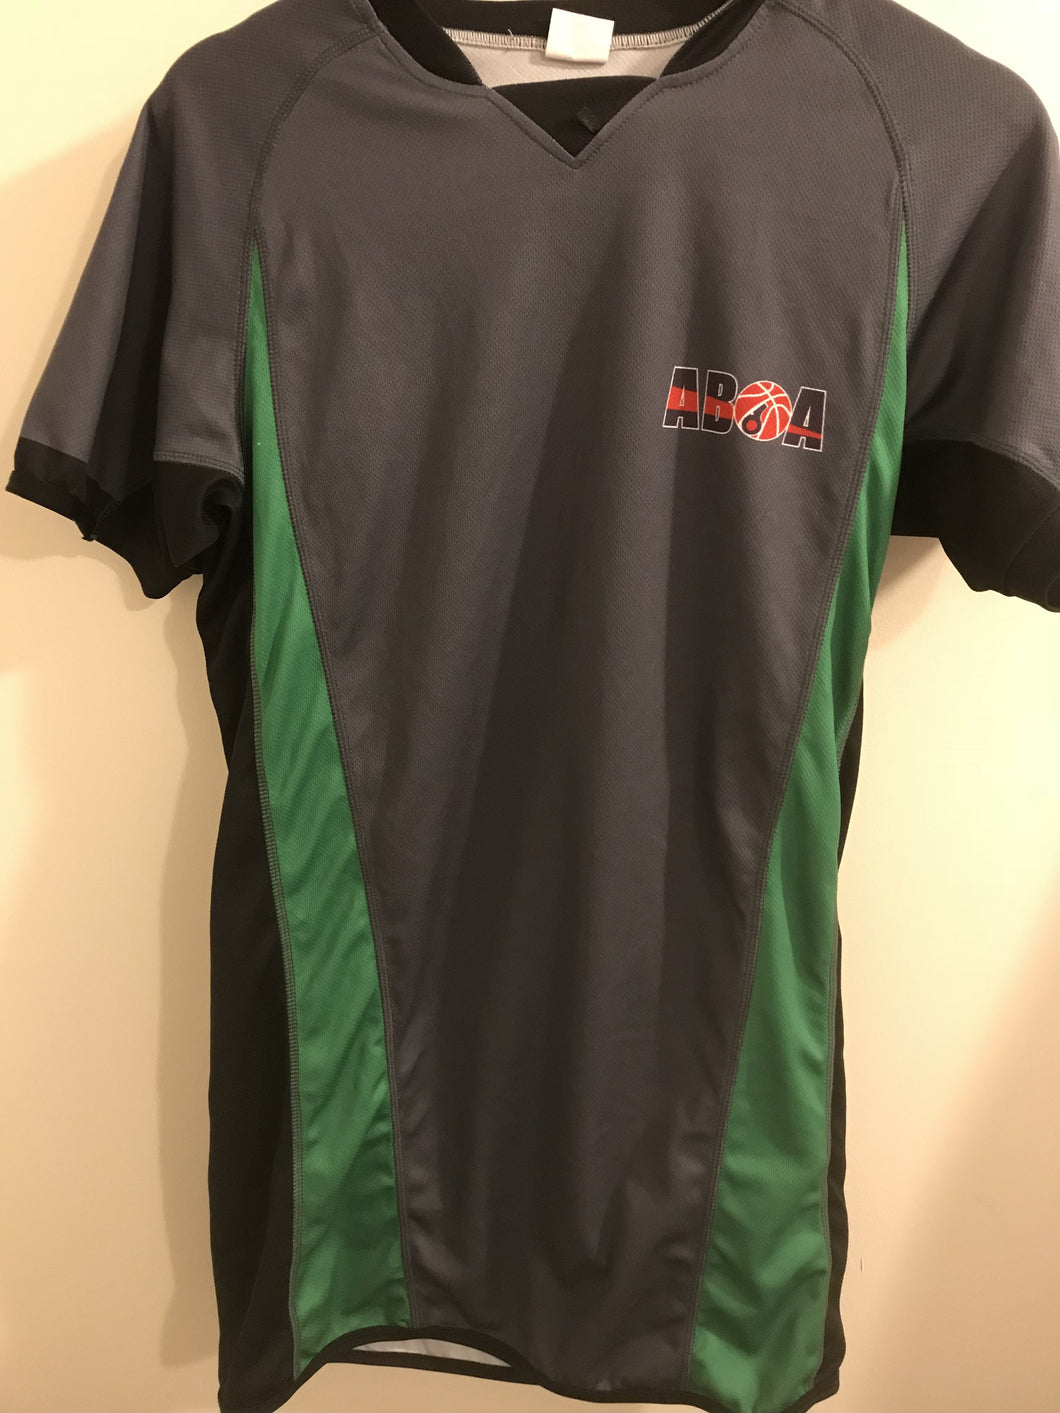 ABOA Referee Jersey